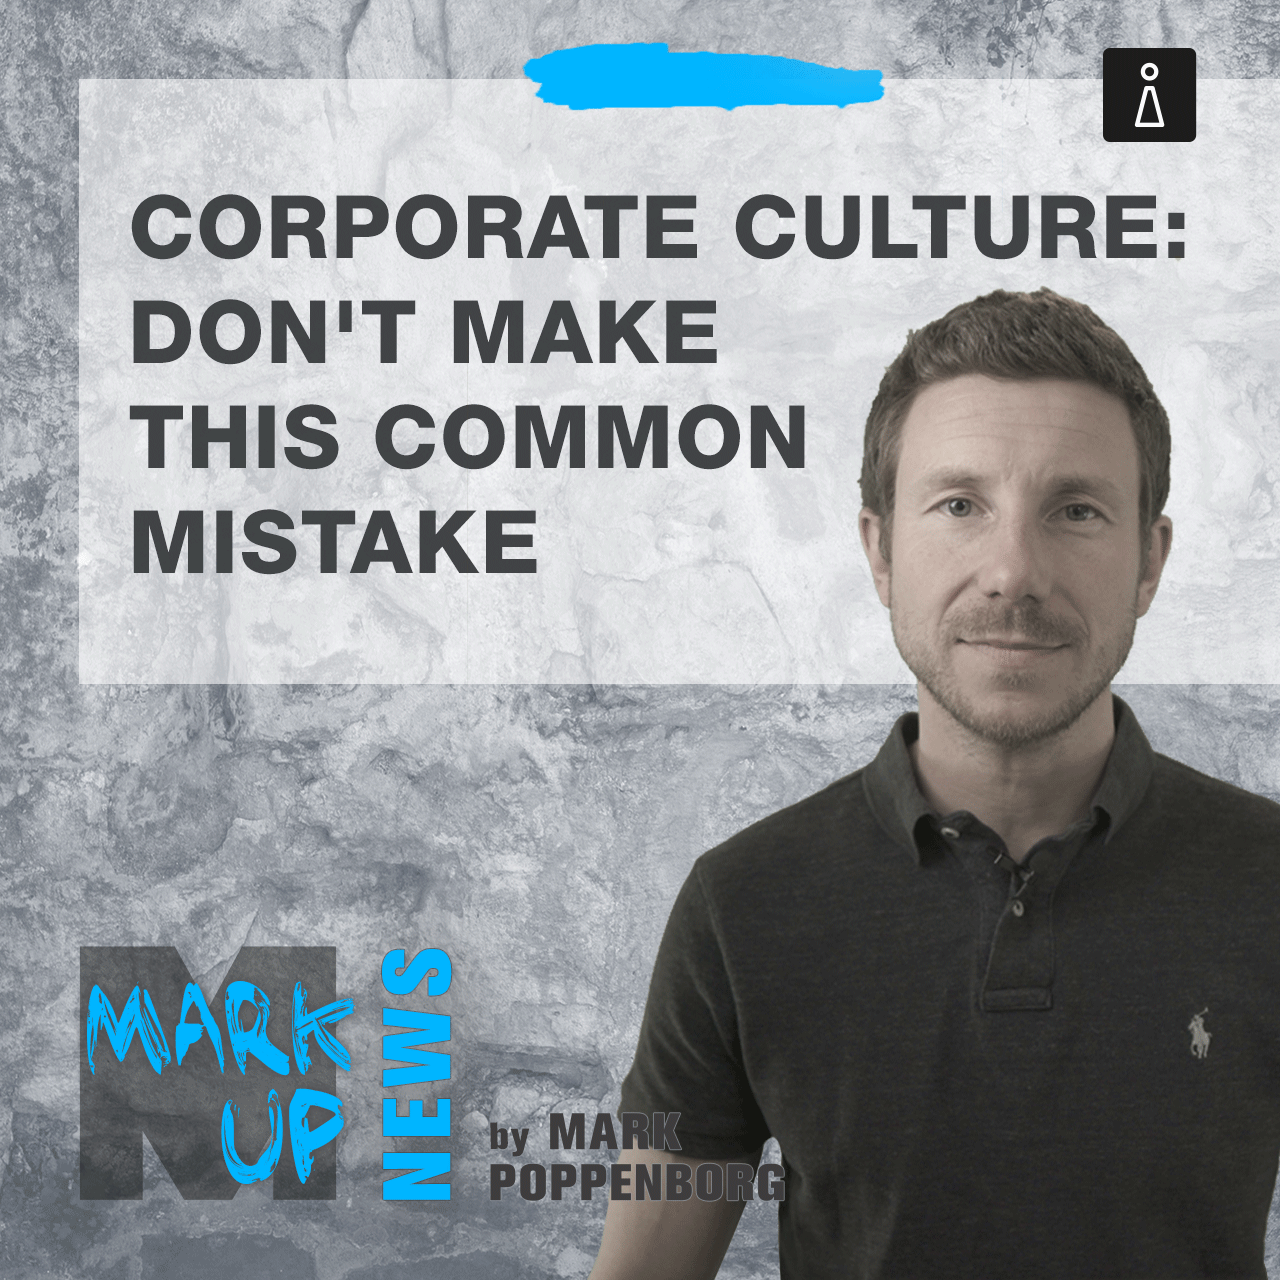 Don't ever try changing your Corporate Culture like this